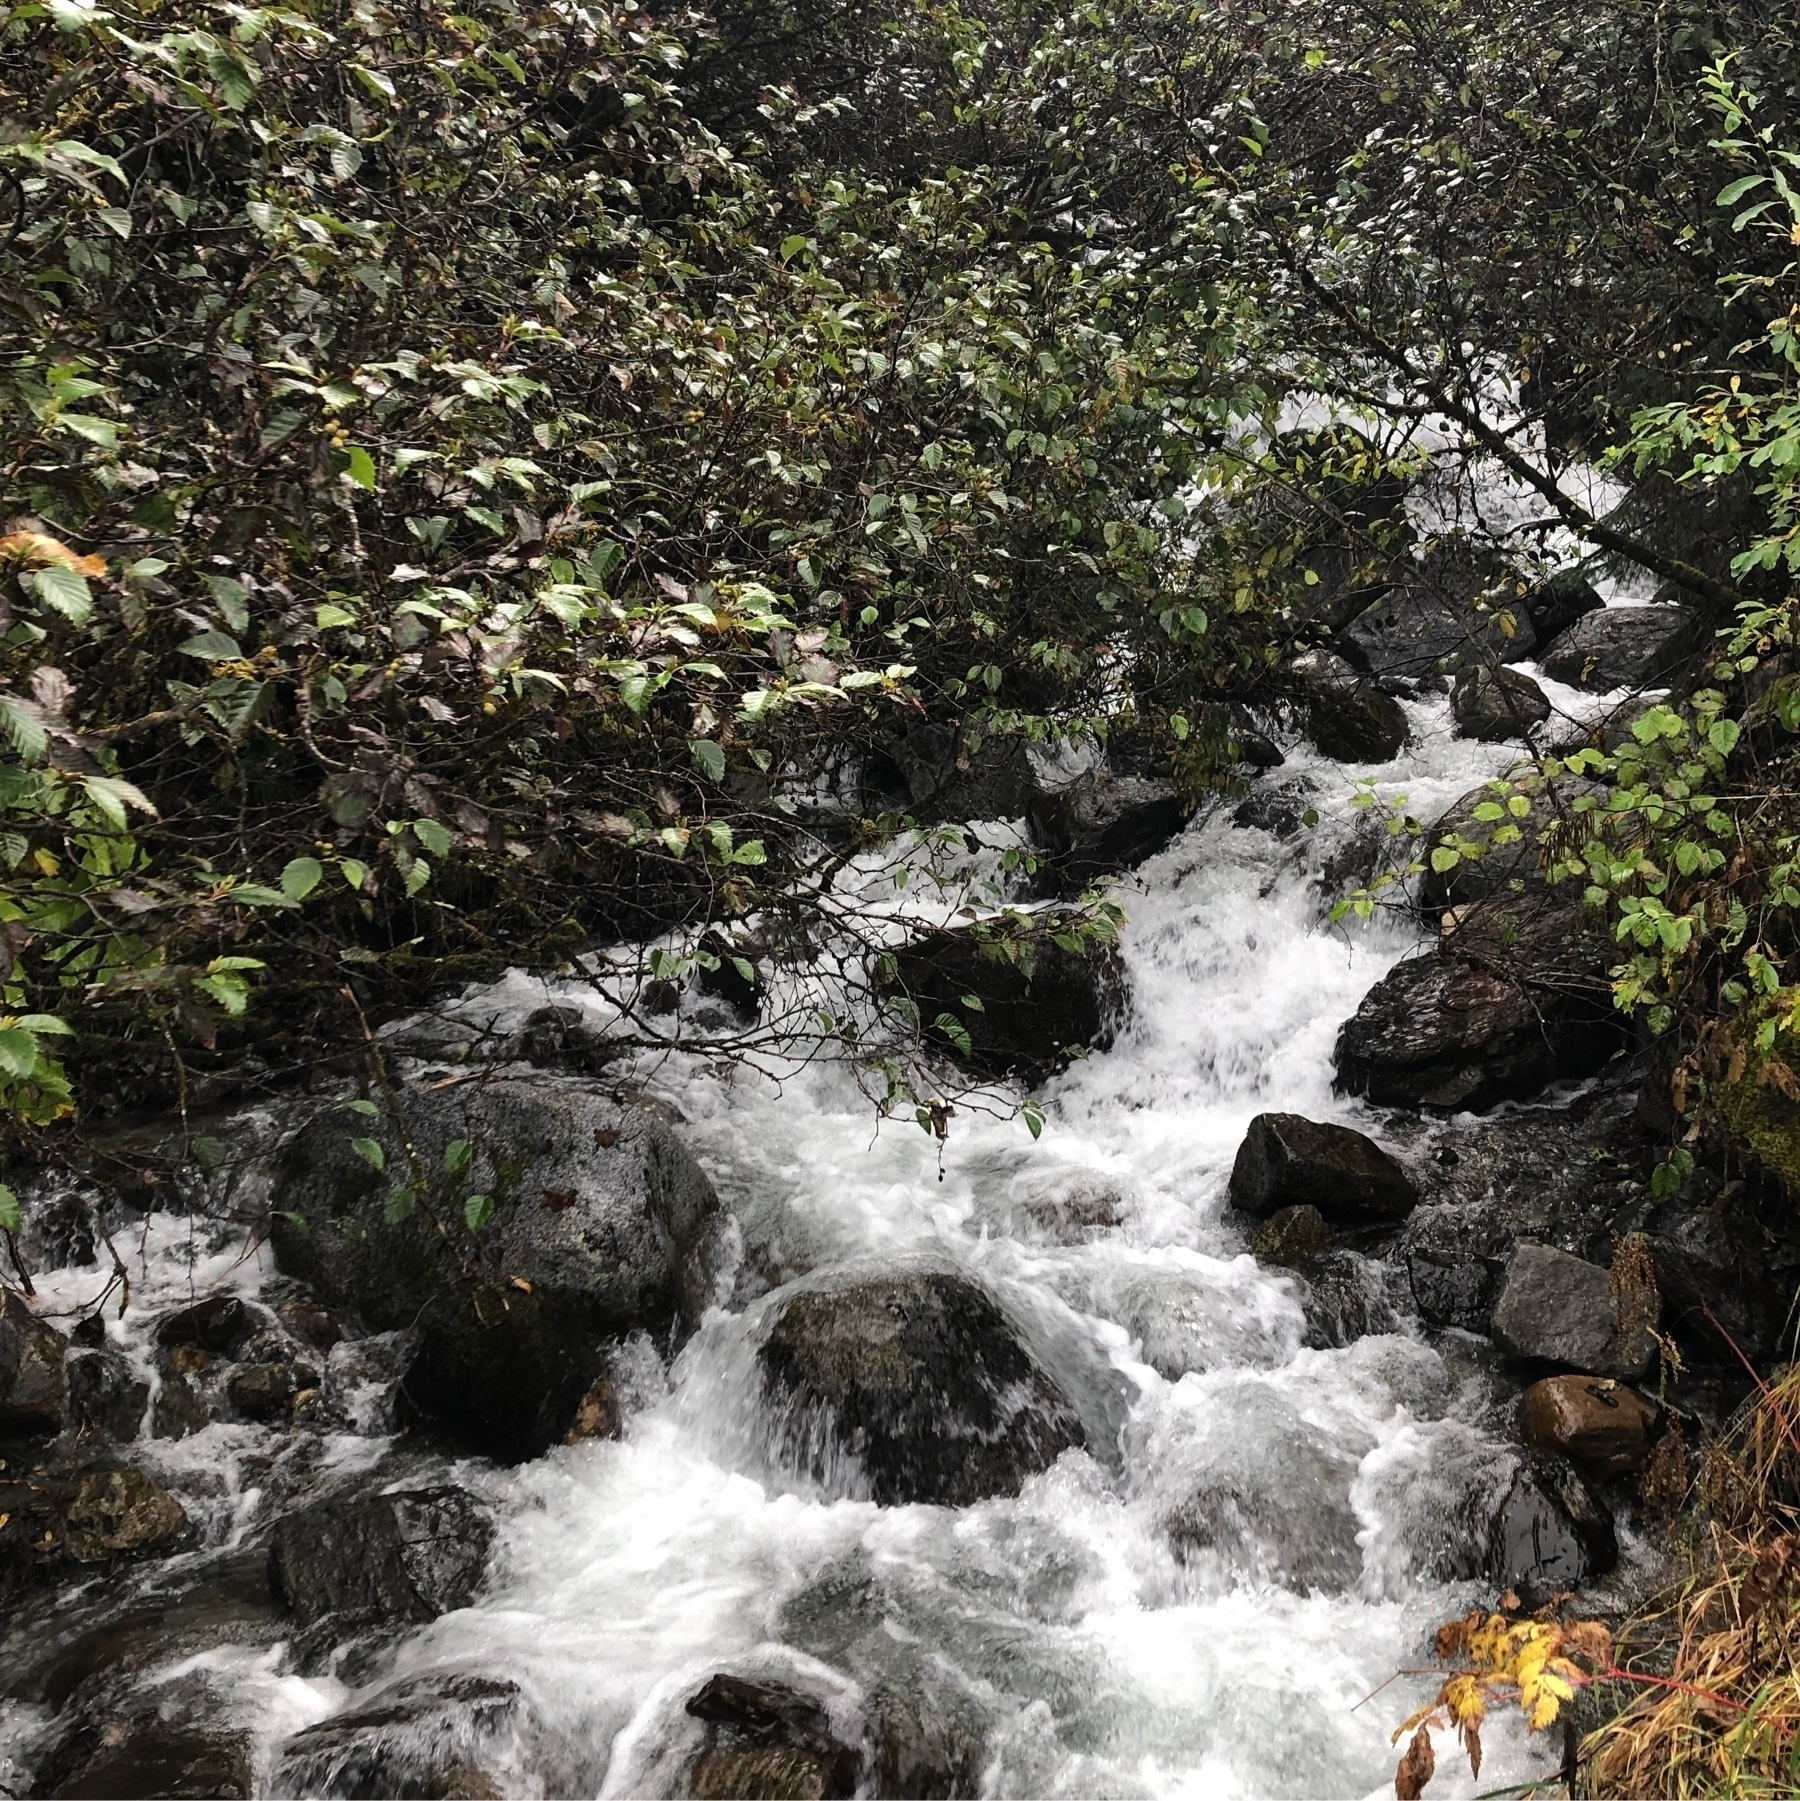 Thin streams of cold water form a lacy network as they flow over boulders in this pretty forest waterfall.